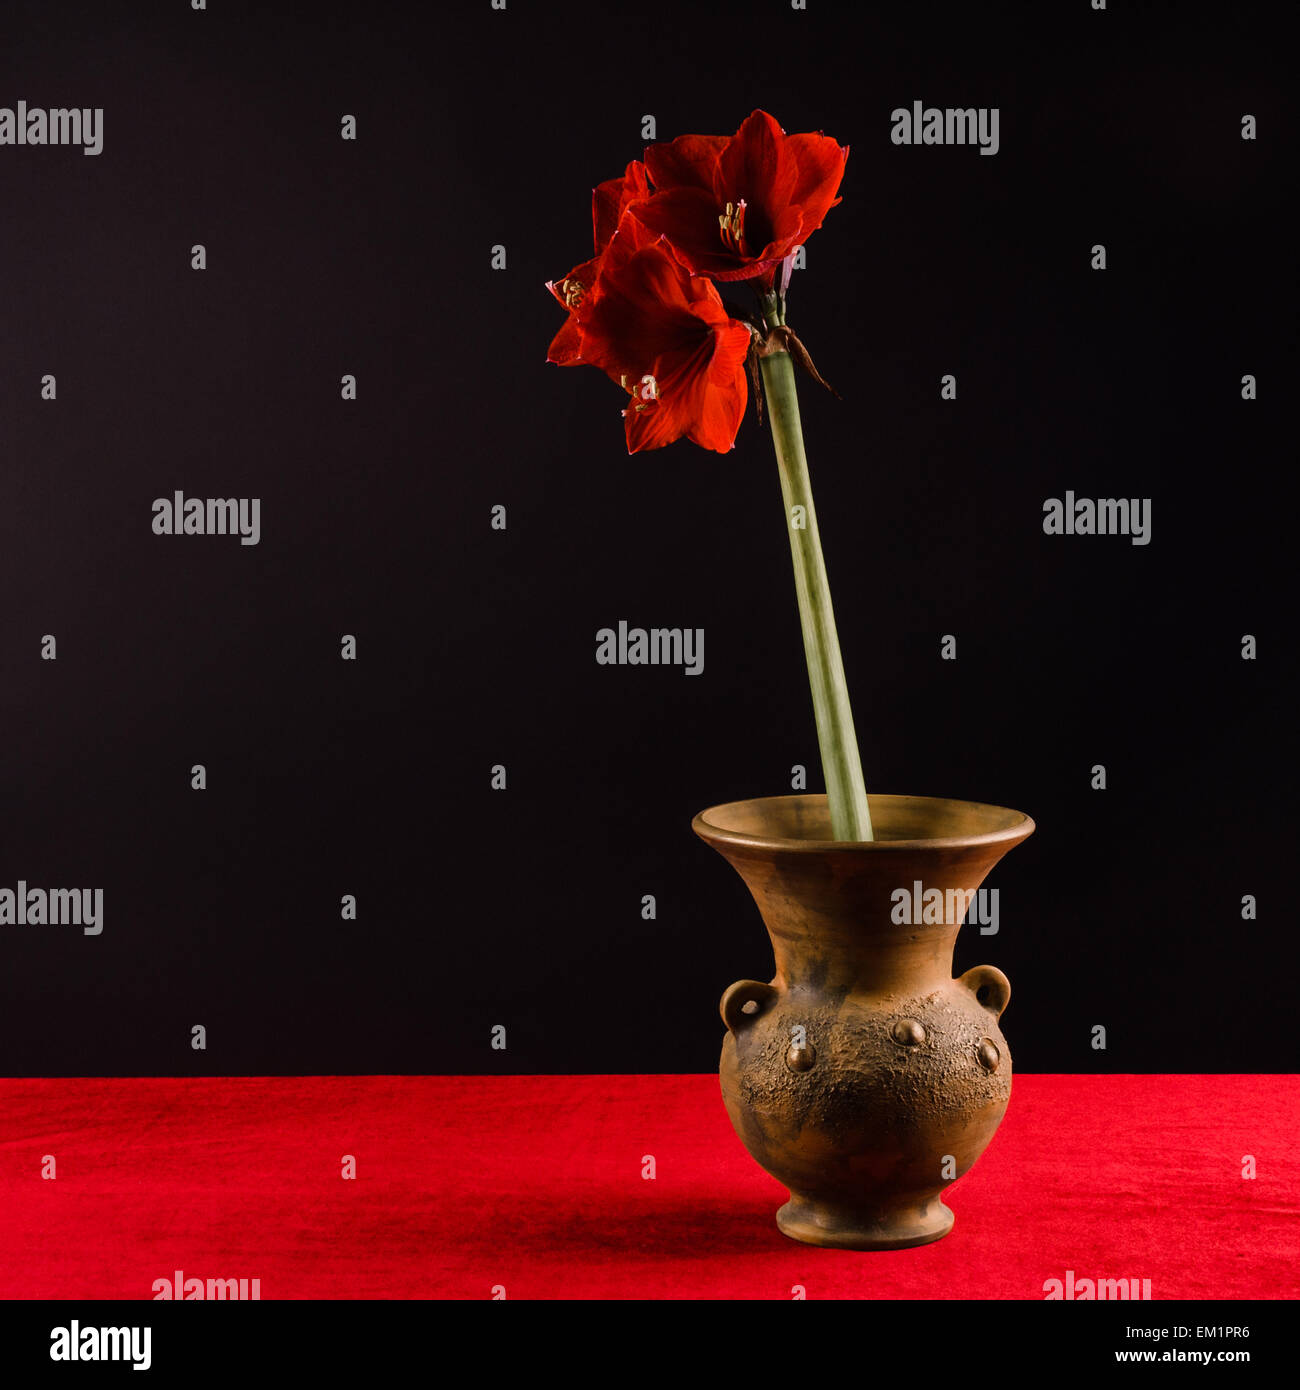 Beautiful blooming red amaryllis flower in a pot vase on table beautiful blooming red amaryllis flower in a pot vase on table with red tabletop and black background still life reviewsmspy